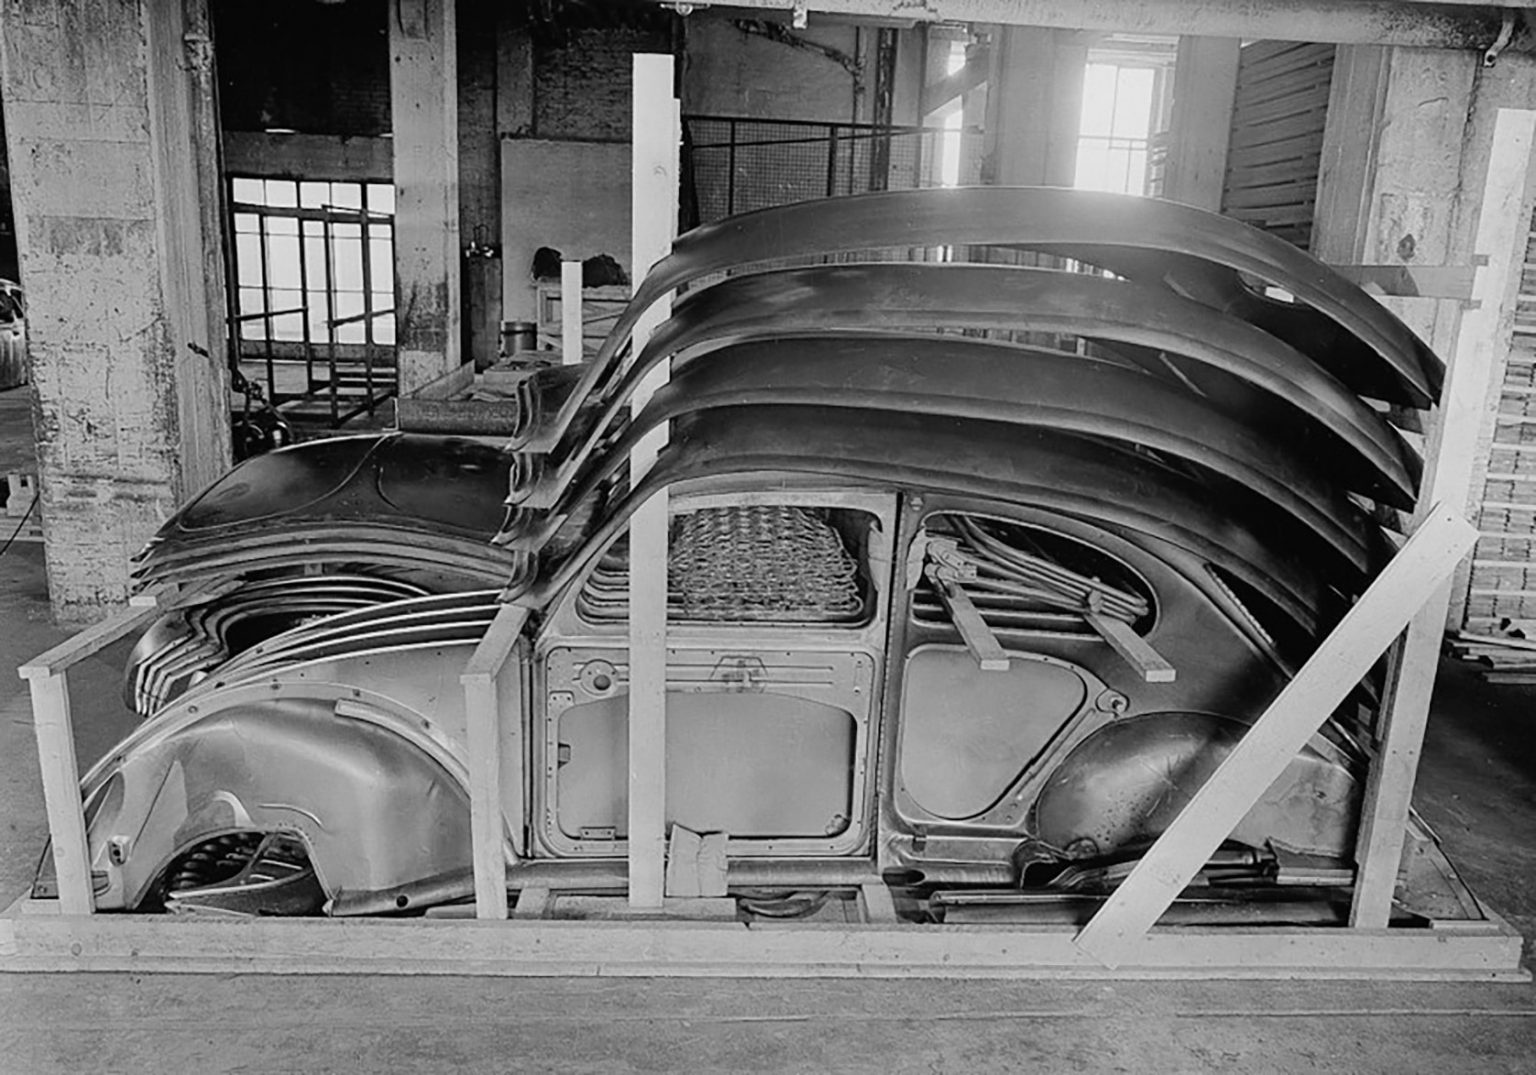 Beetles in boxes body panels stacked